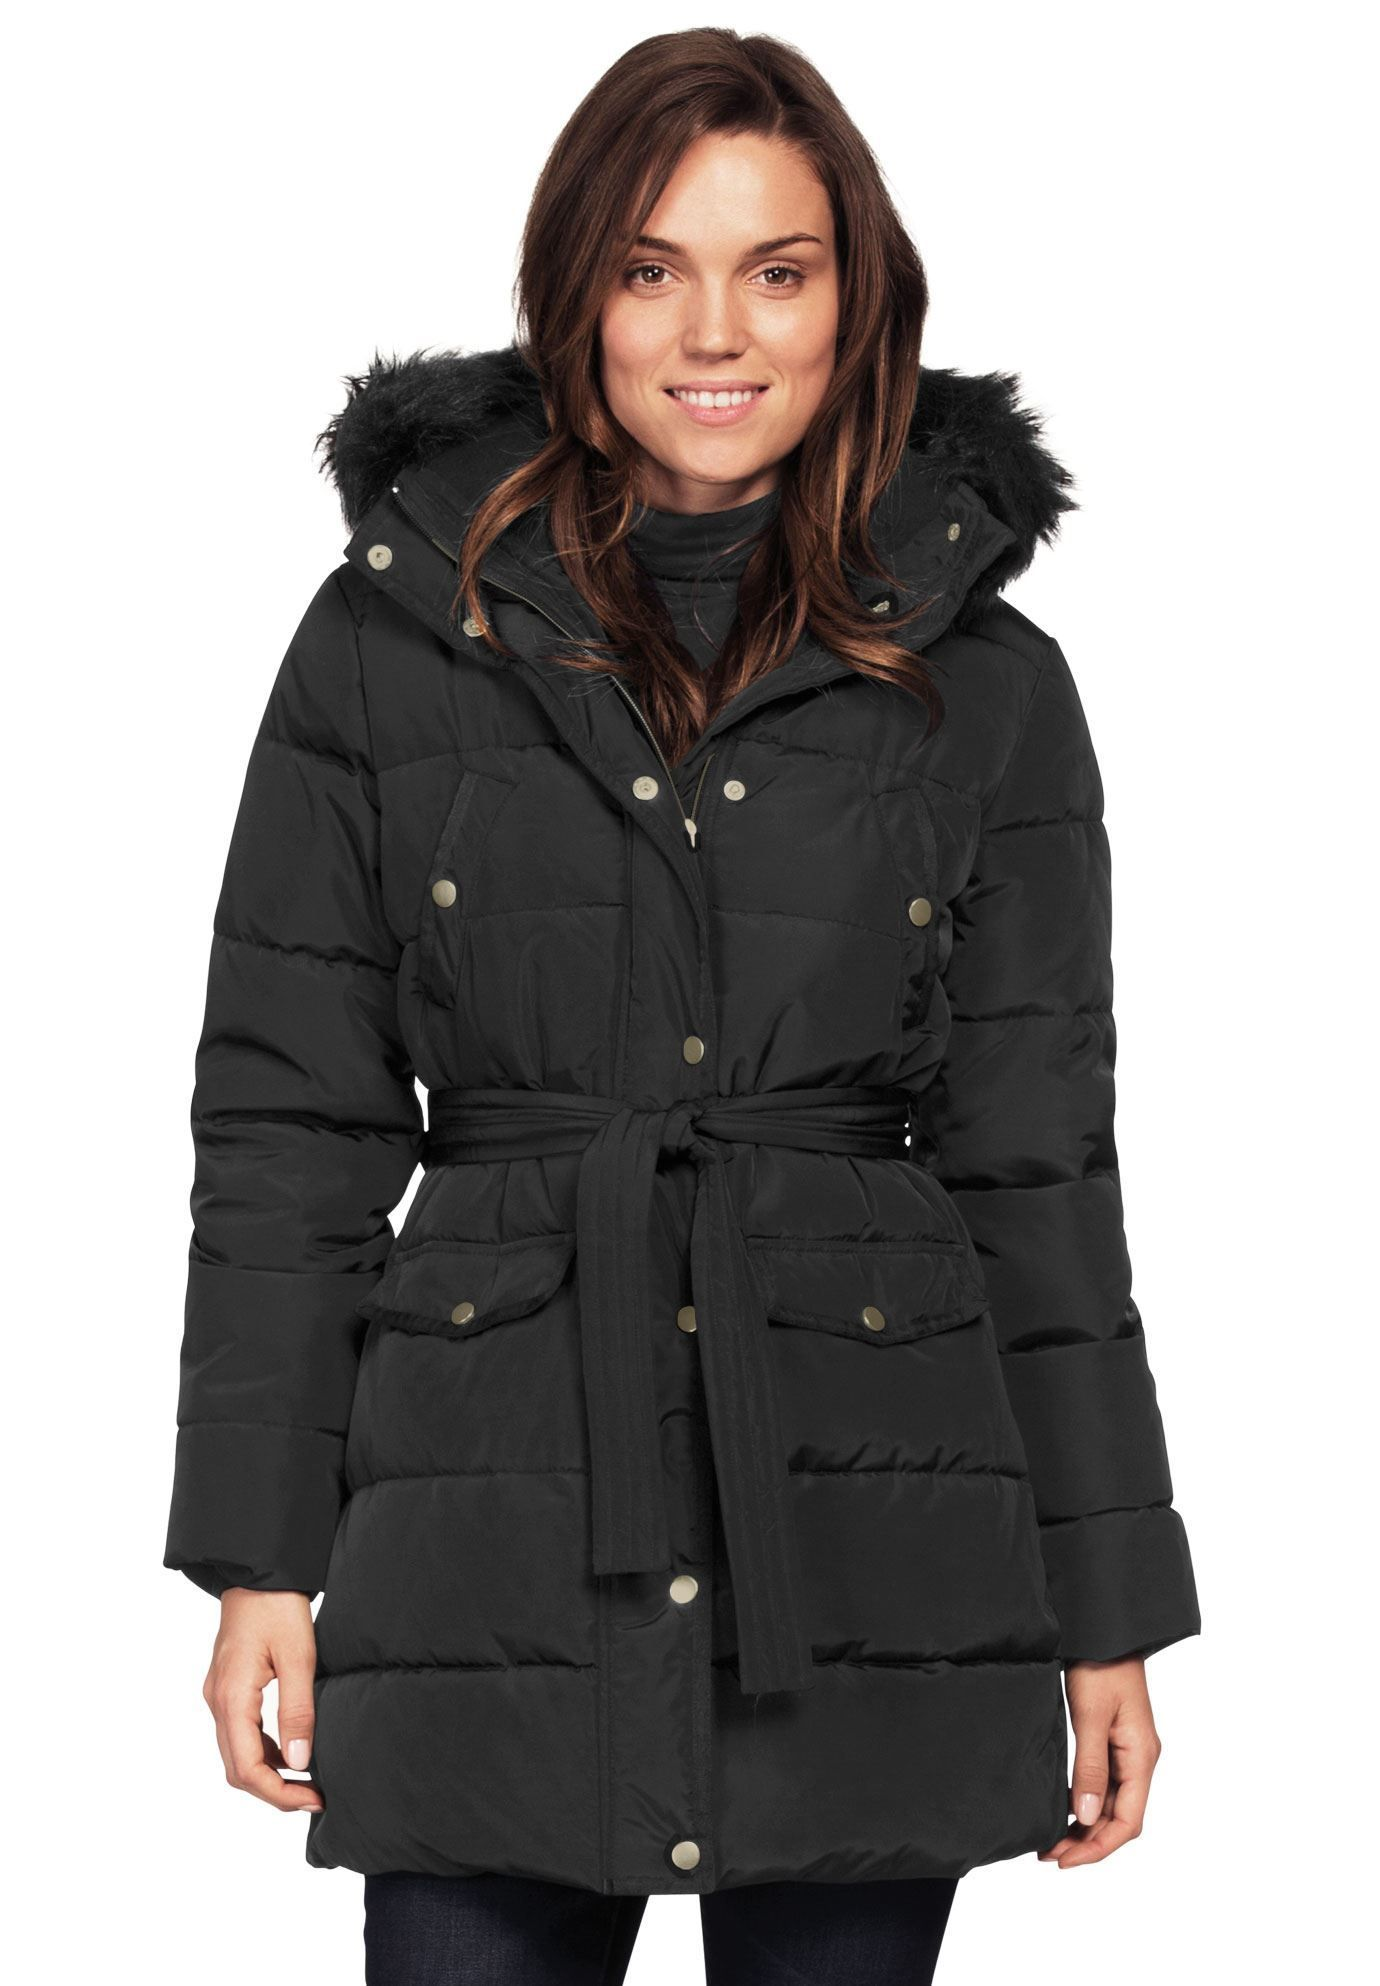 3fb83f26a29 Belted Puffer Coat by ellos - Women s Plus Size Clothing  plussizecoatsblack